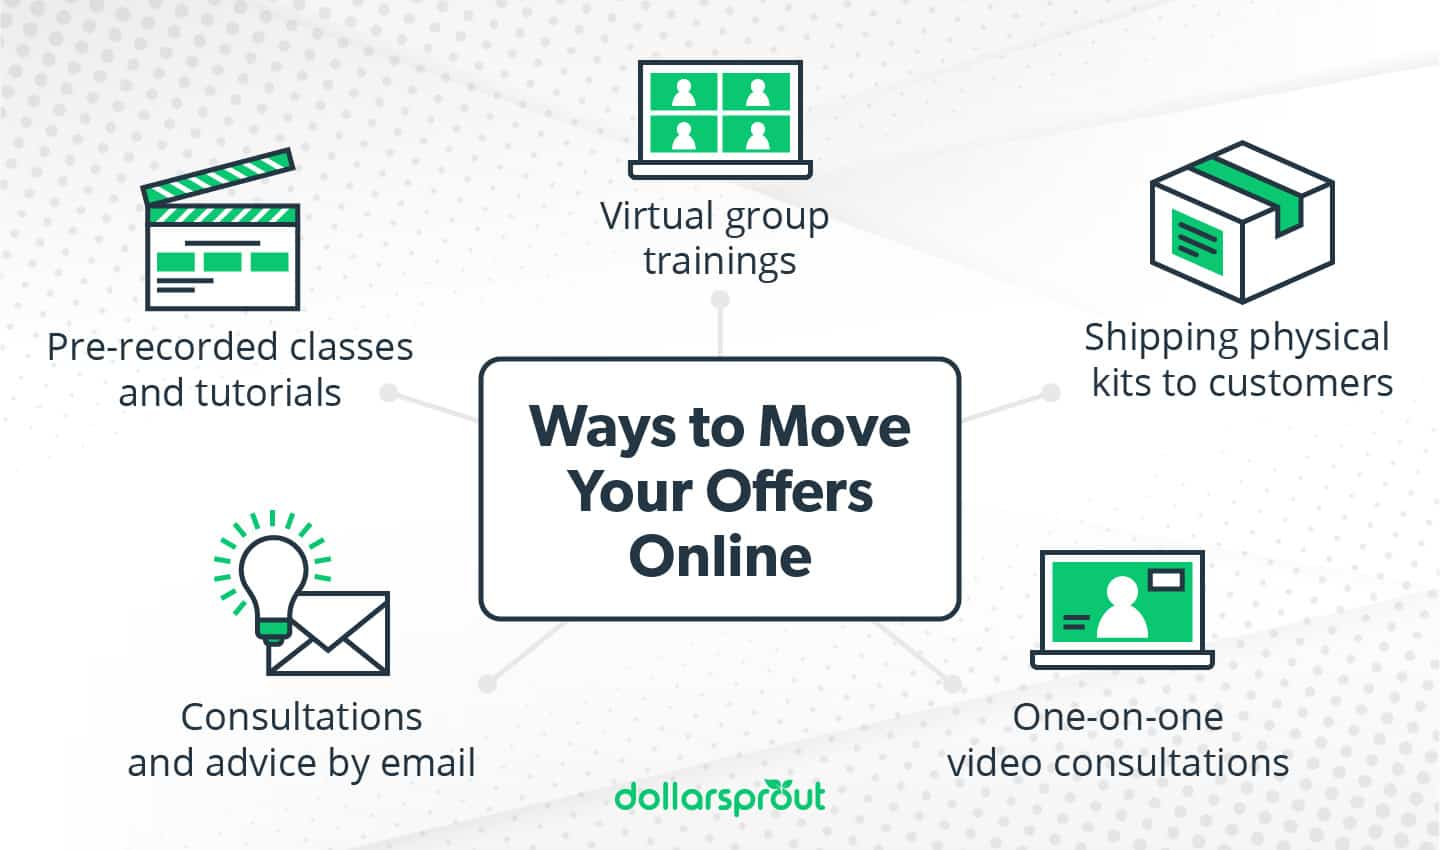 Ways to move your offers online